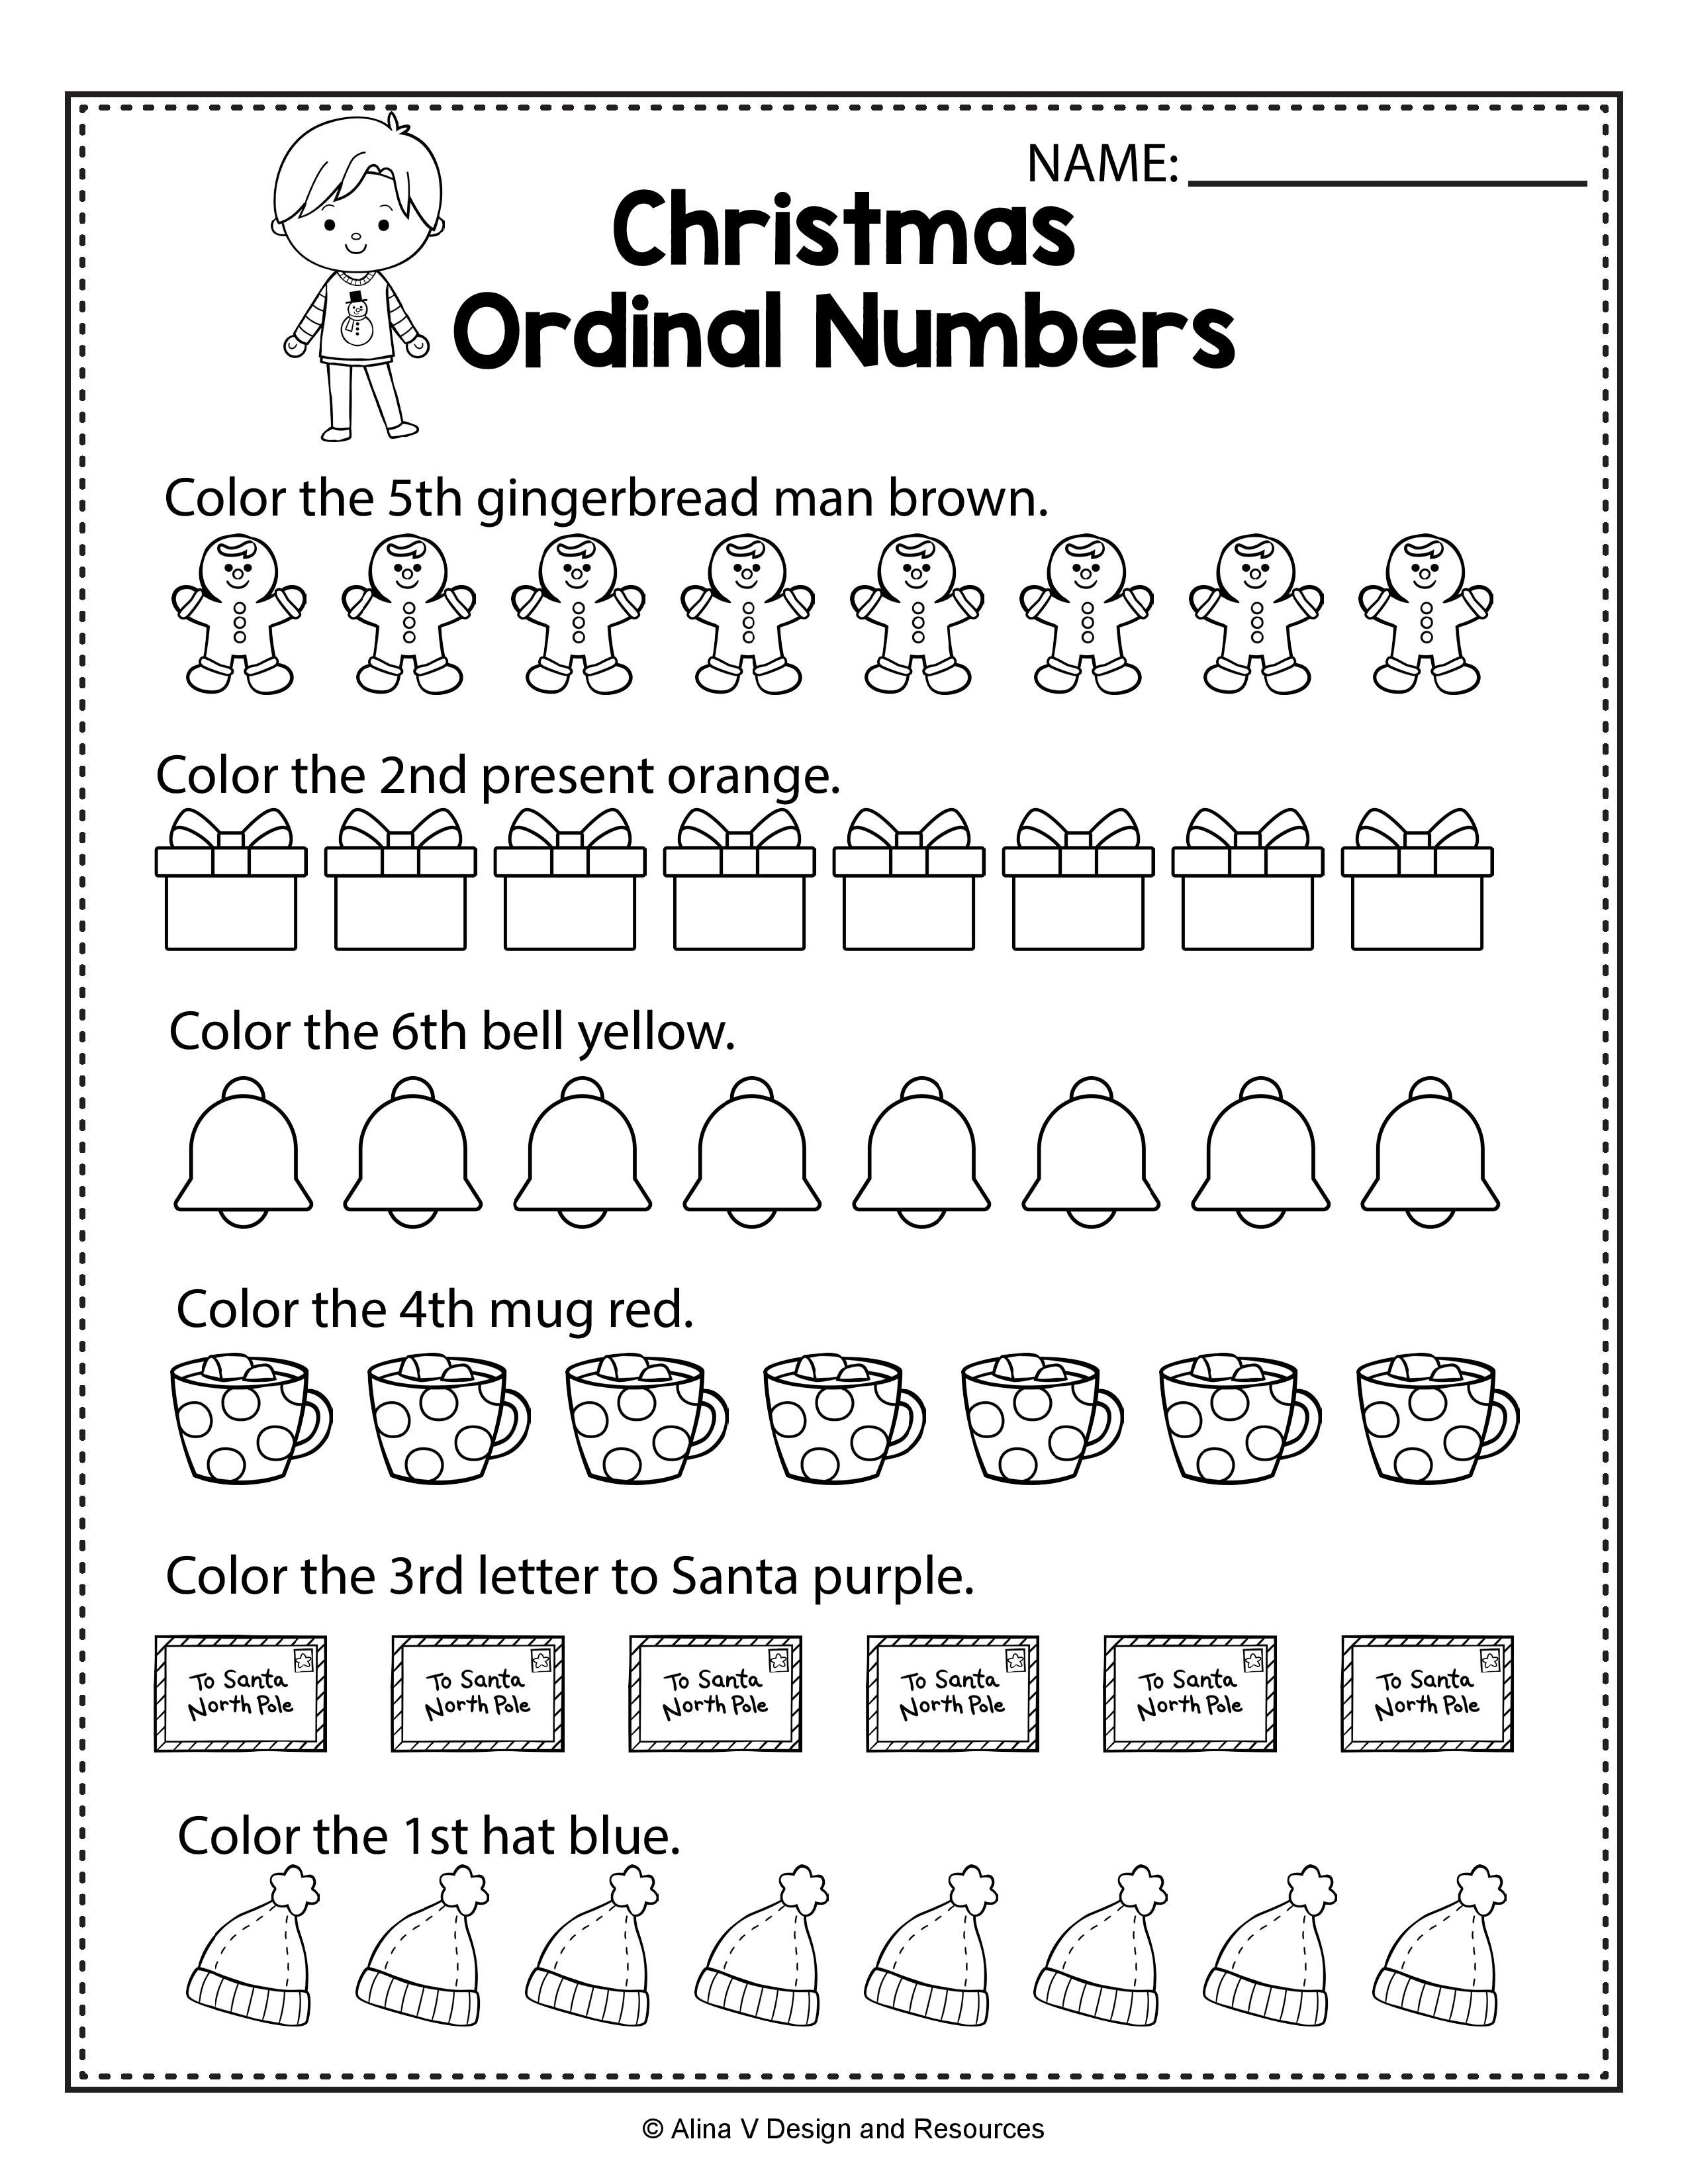 Christmas Ordinal Numbers Math Worksheets And Activities For